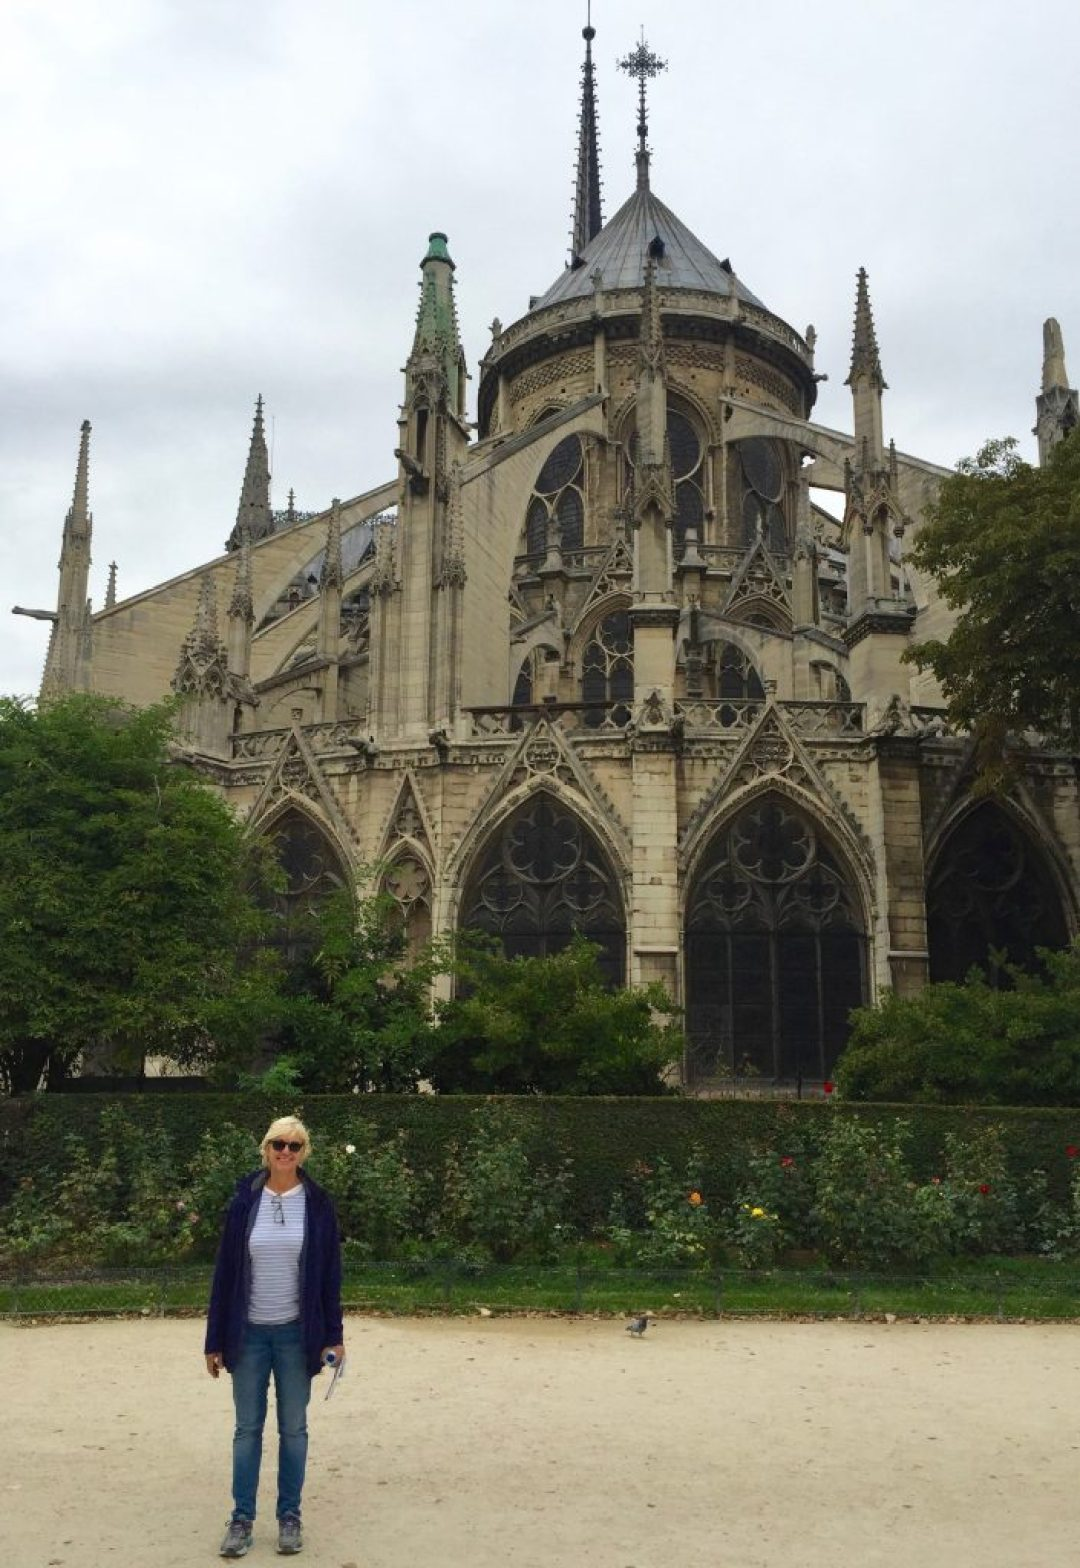 Notre Dame'sflying buttresses.